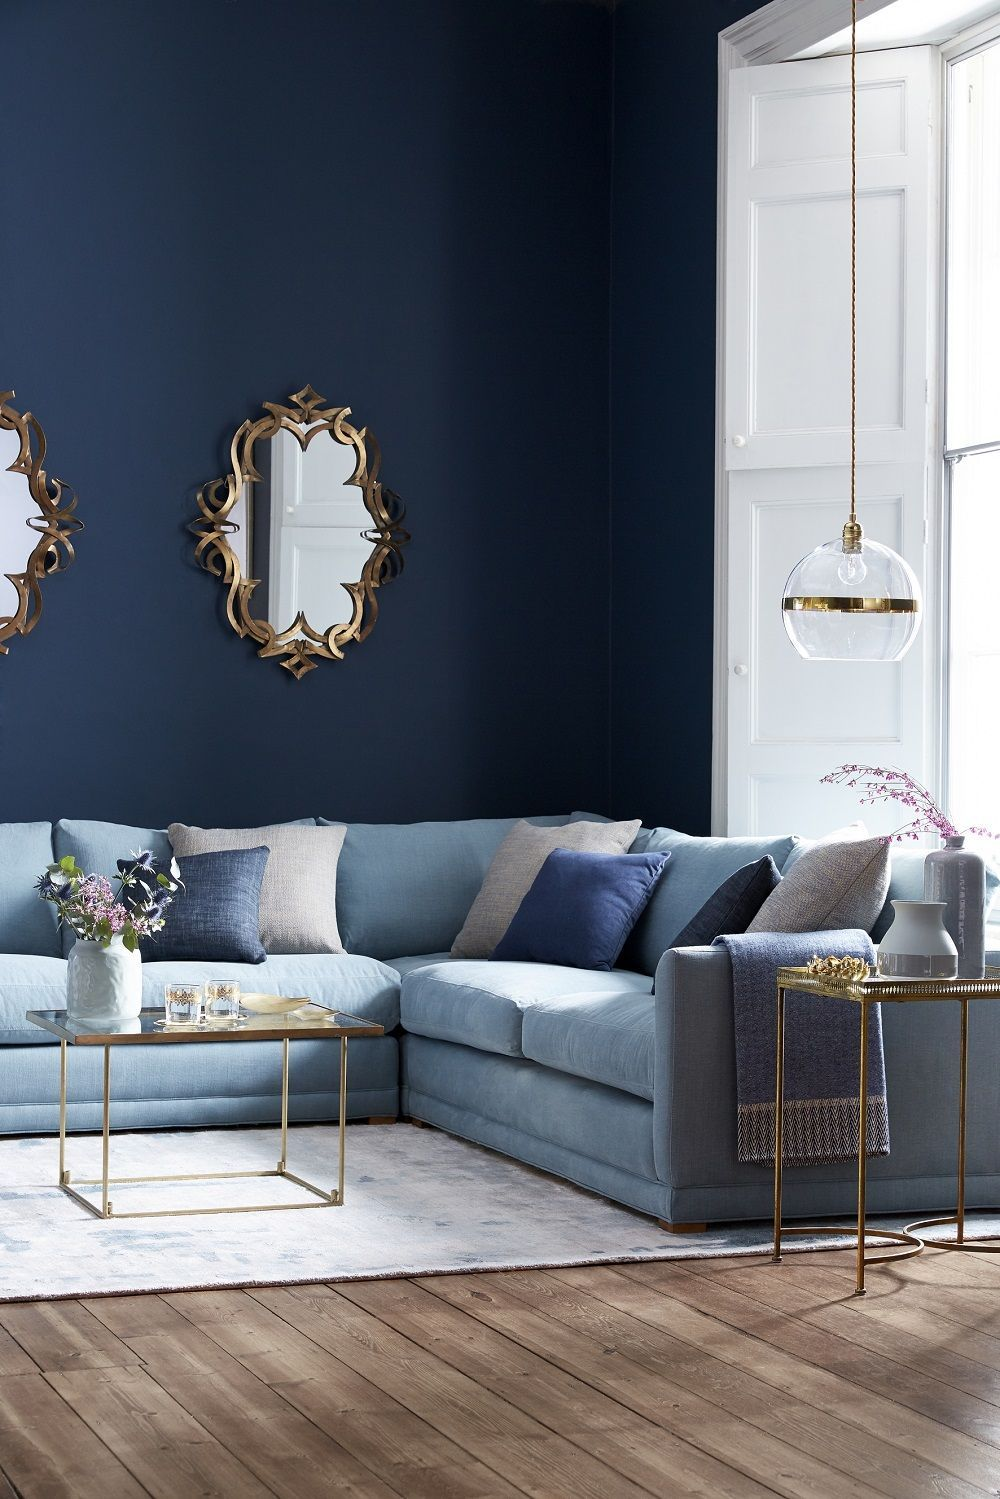 6 Awesome Picture of Blue Couch Living Room